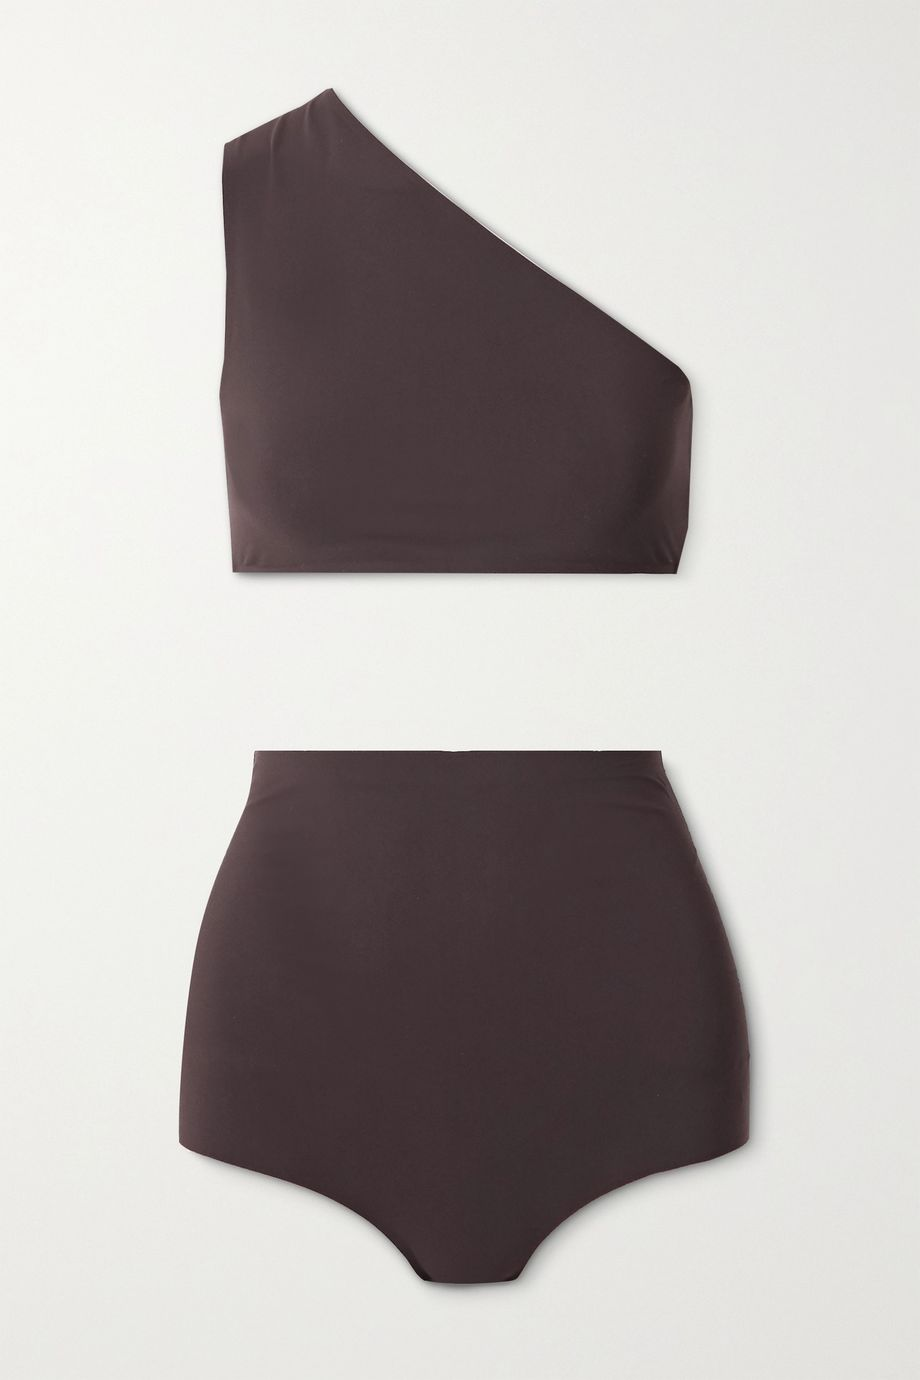 Bottega Veneta One-shoulder bikini